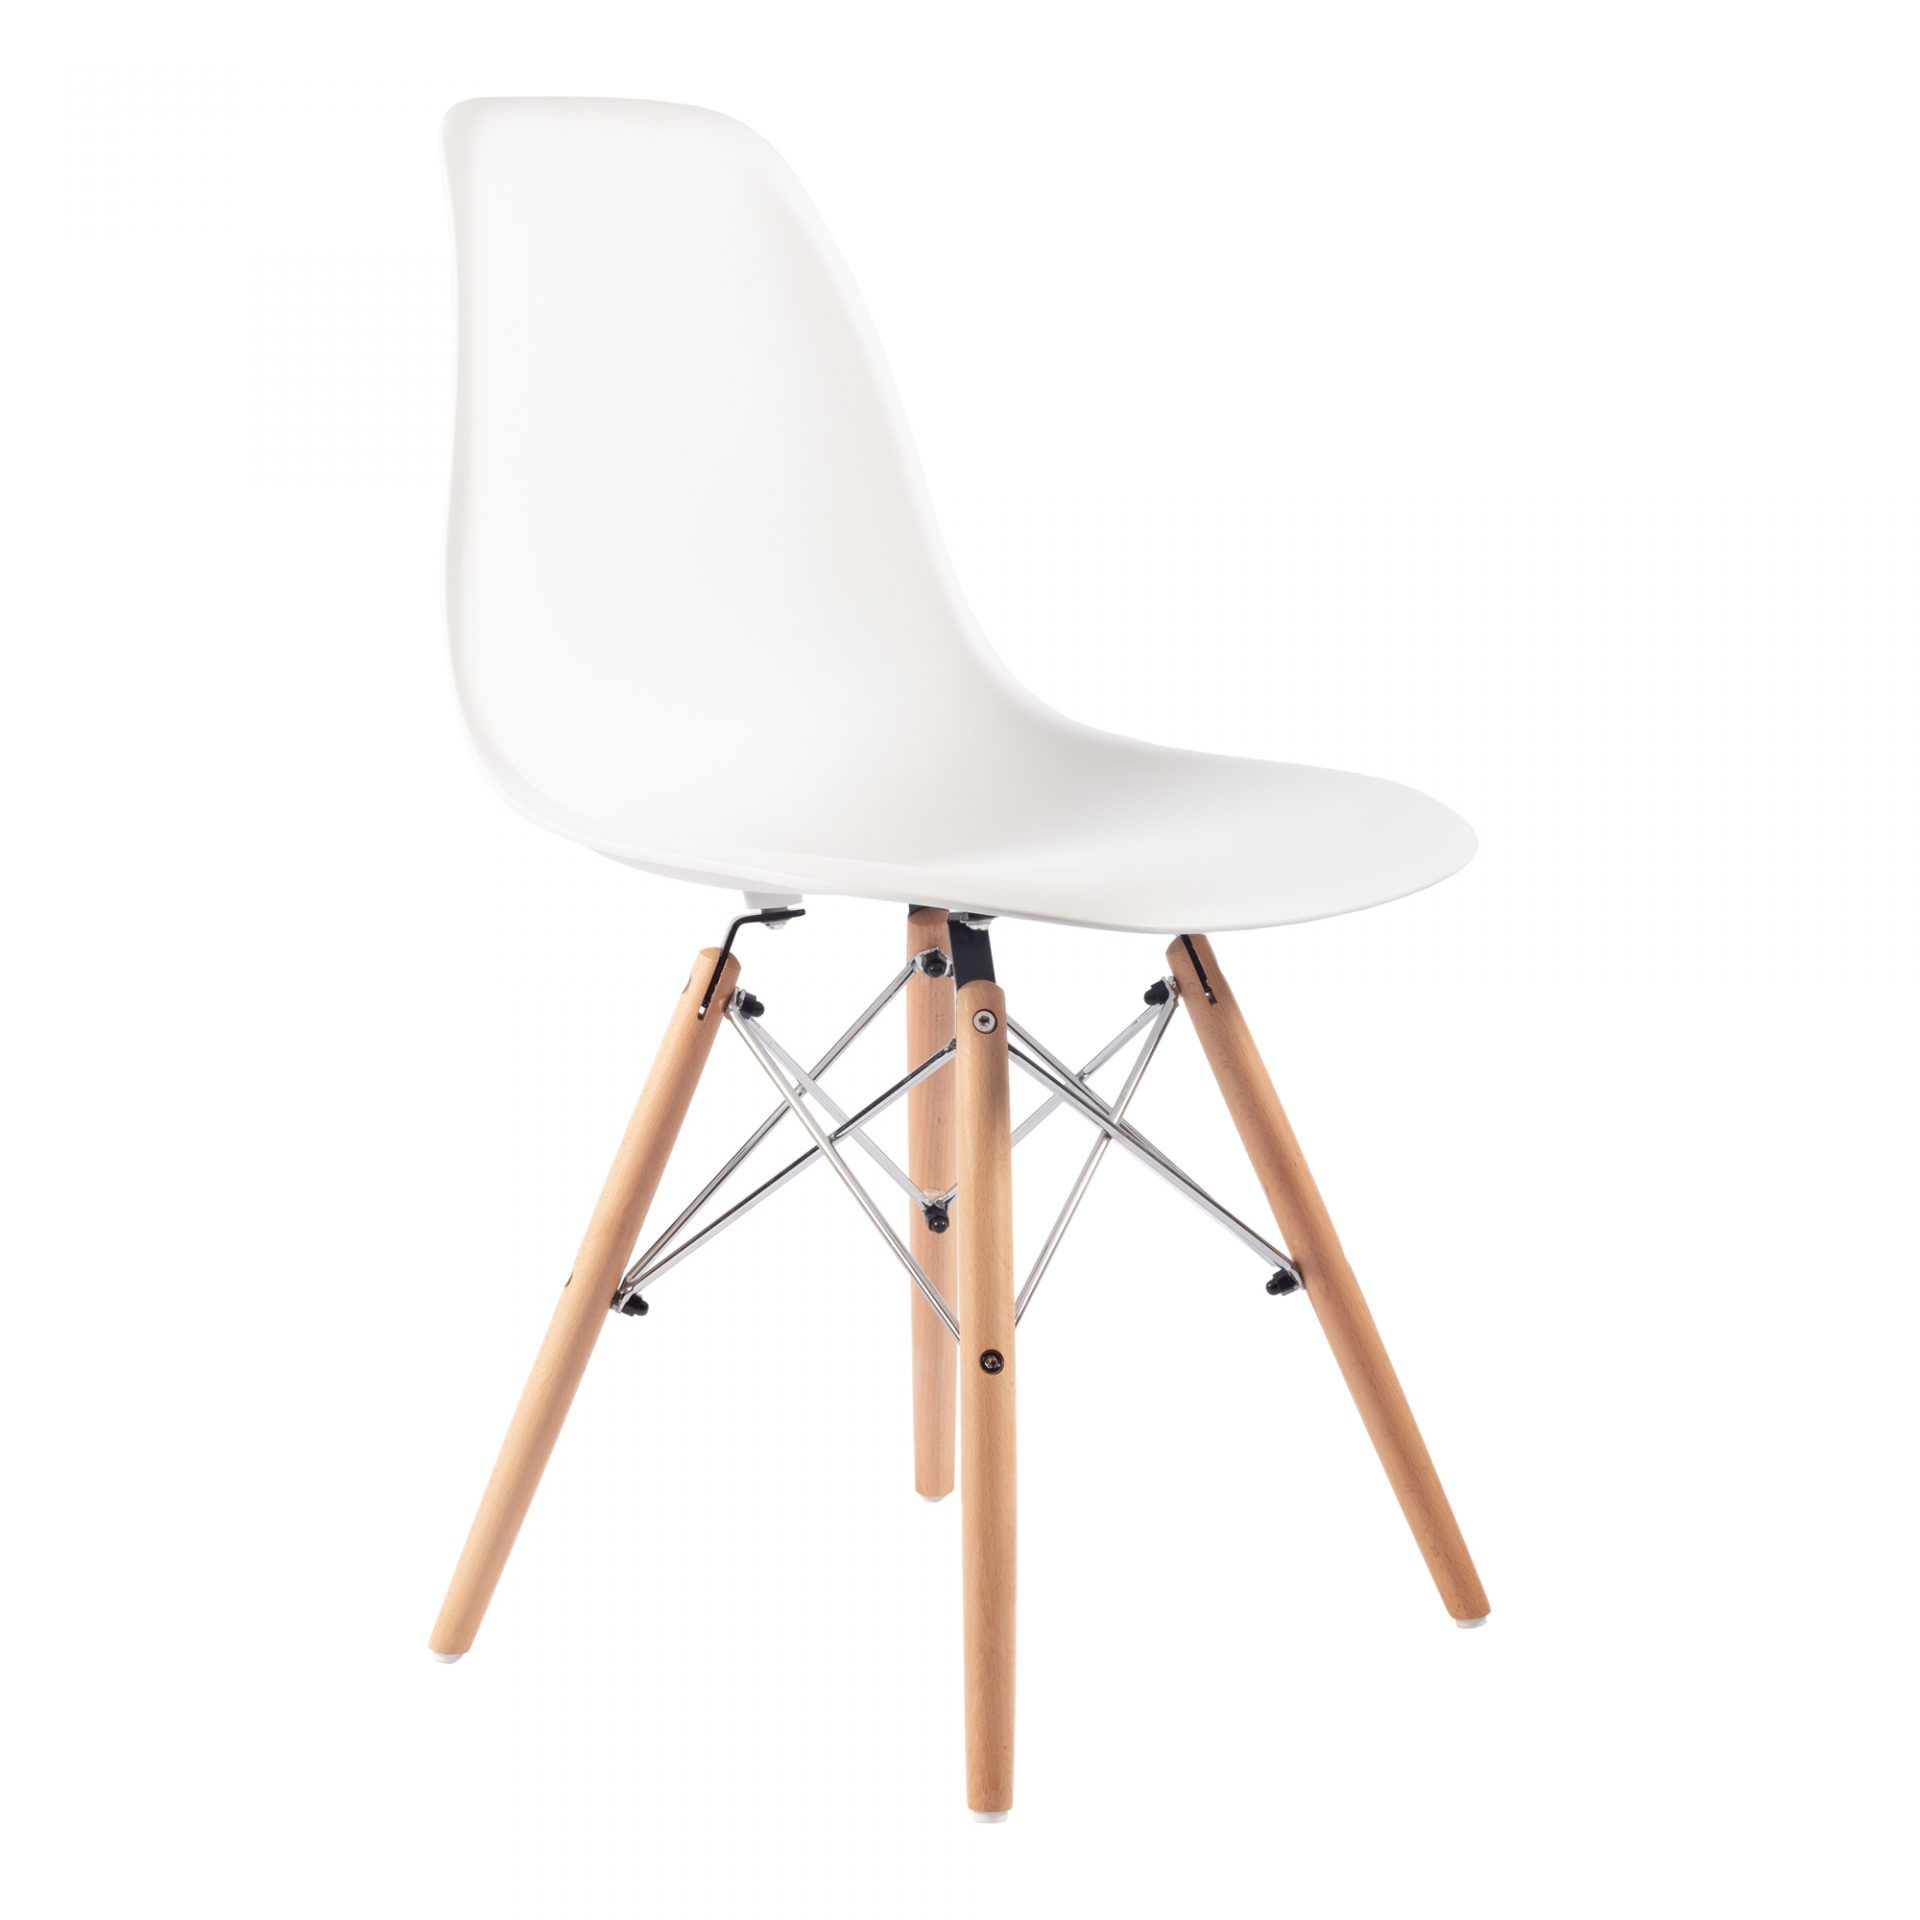 Blizzard Dining Chair White M2 Dining Chairs Moe S Wholesale White Dining Chairs Modern Living Room Seating